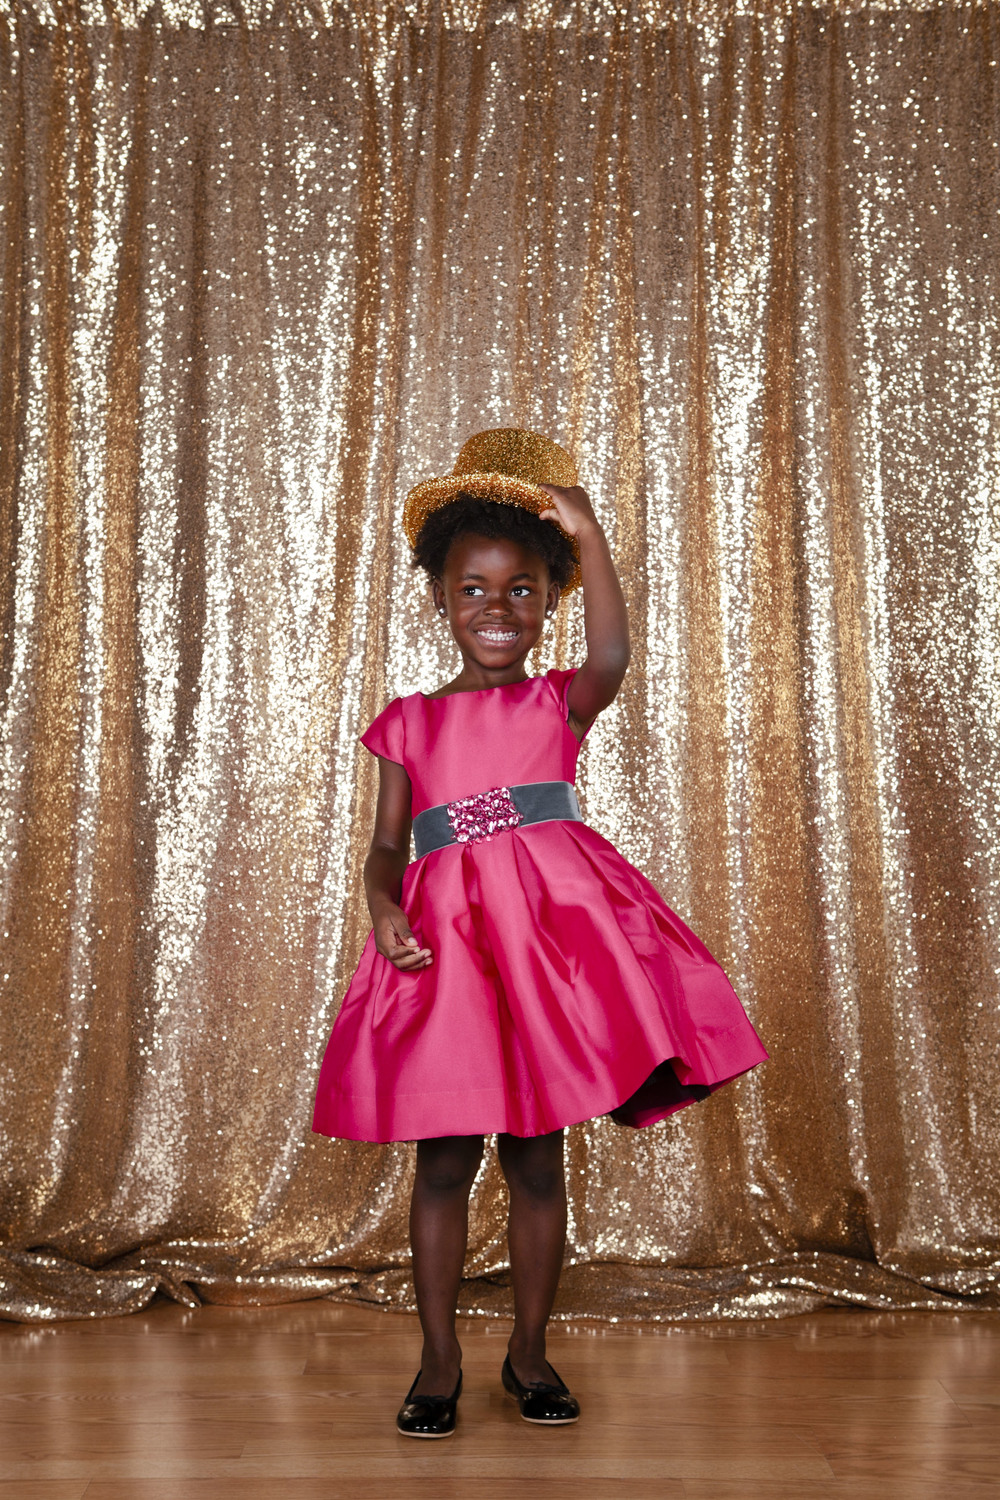 lifestyle-editorial-children-washington-dc-malek-naz-photography-contempo-kids-fashion-gold-sequin.jpg